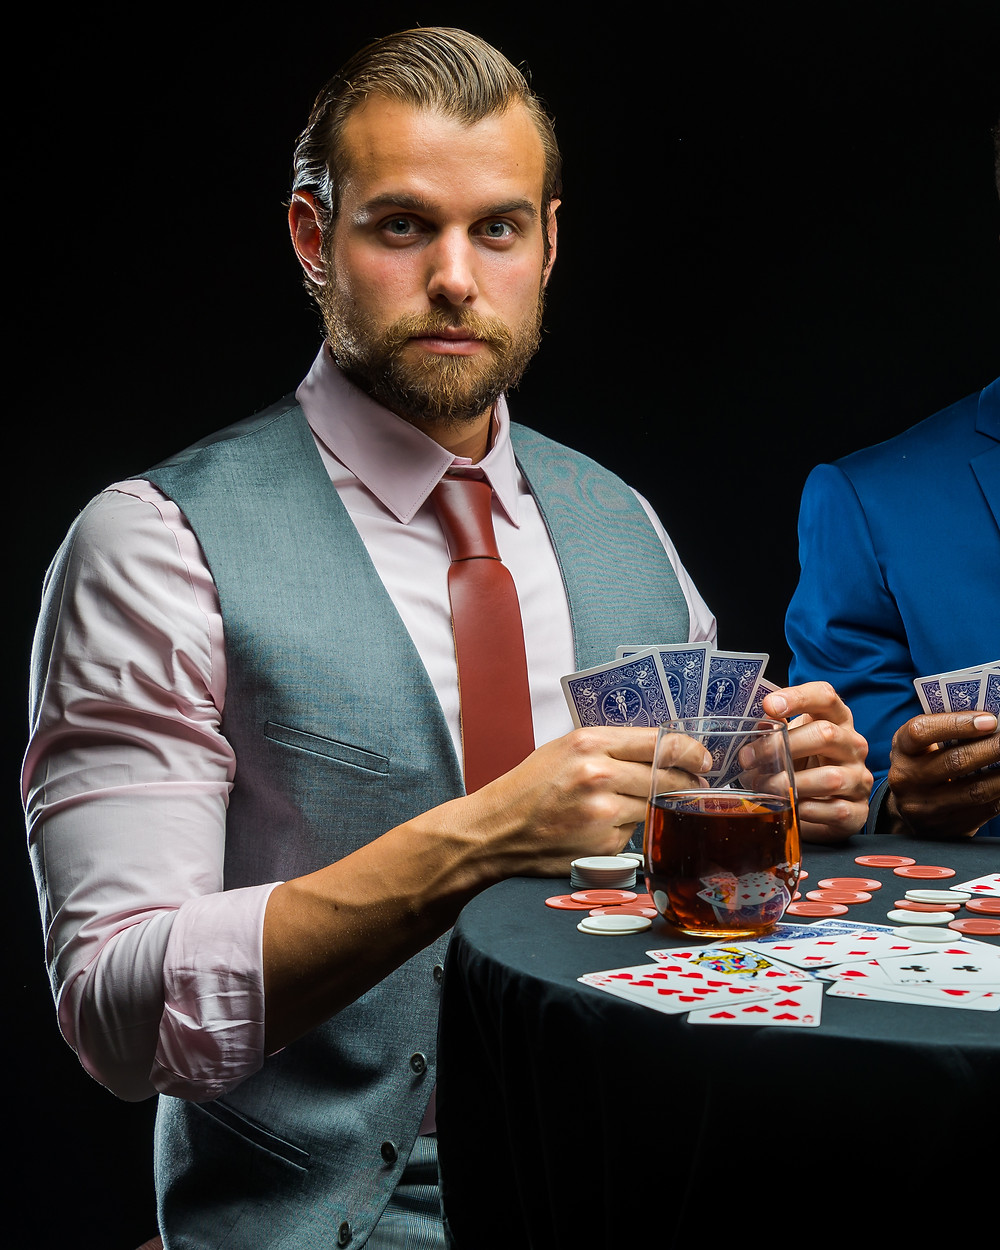 poker face outfit men Scotch whisky learn poker negotiation empathy life skills